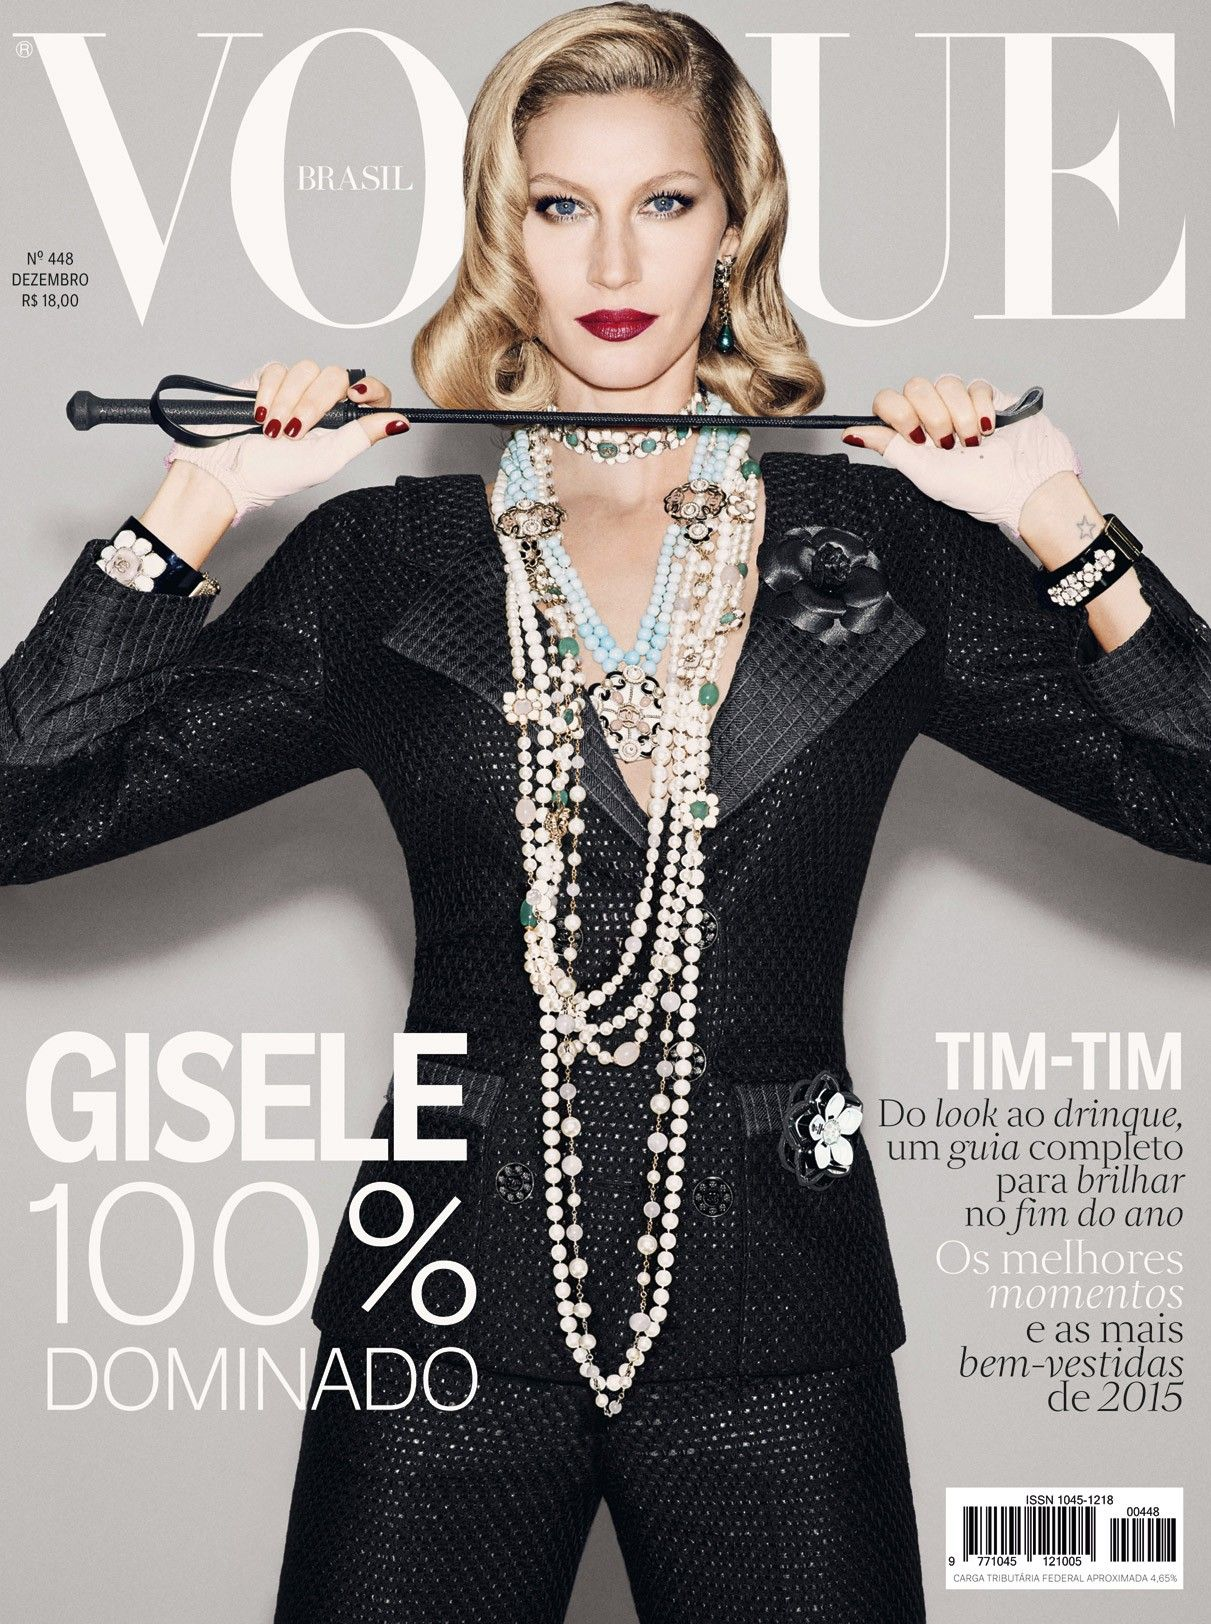 44d88eaae6724 Gisele Bundchen Throughout the Years in Vogue   Vogue Brasil Best ...